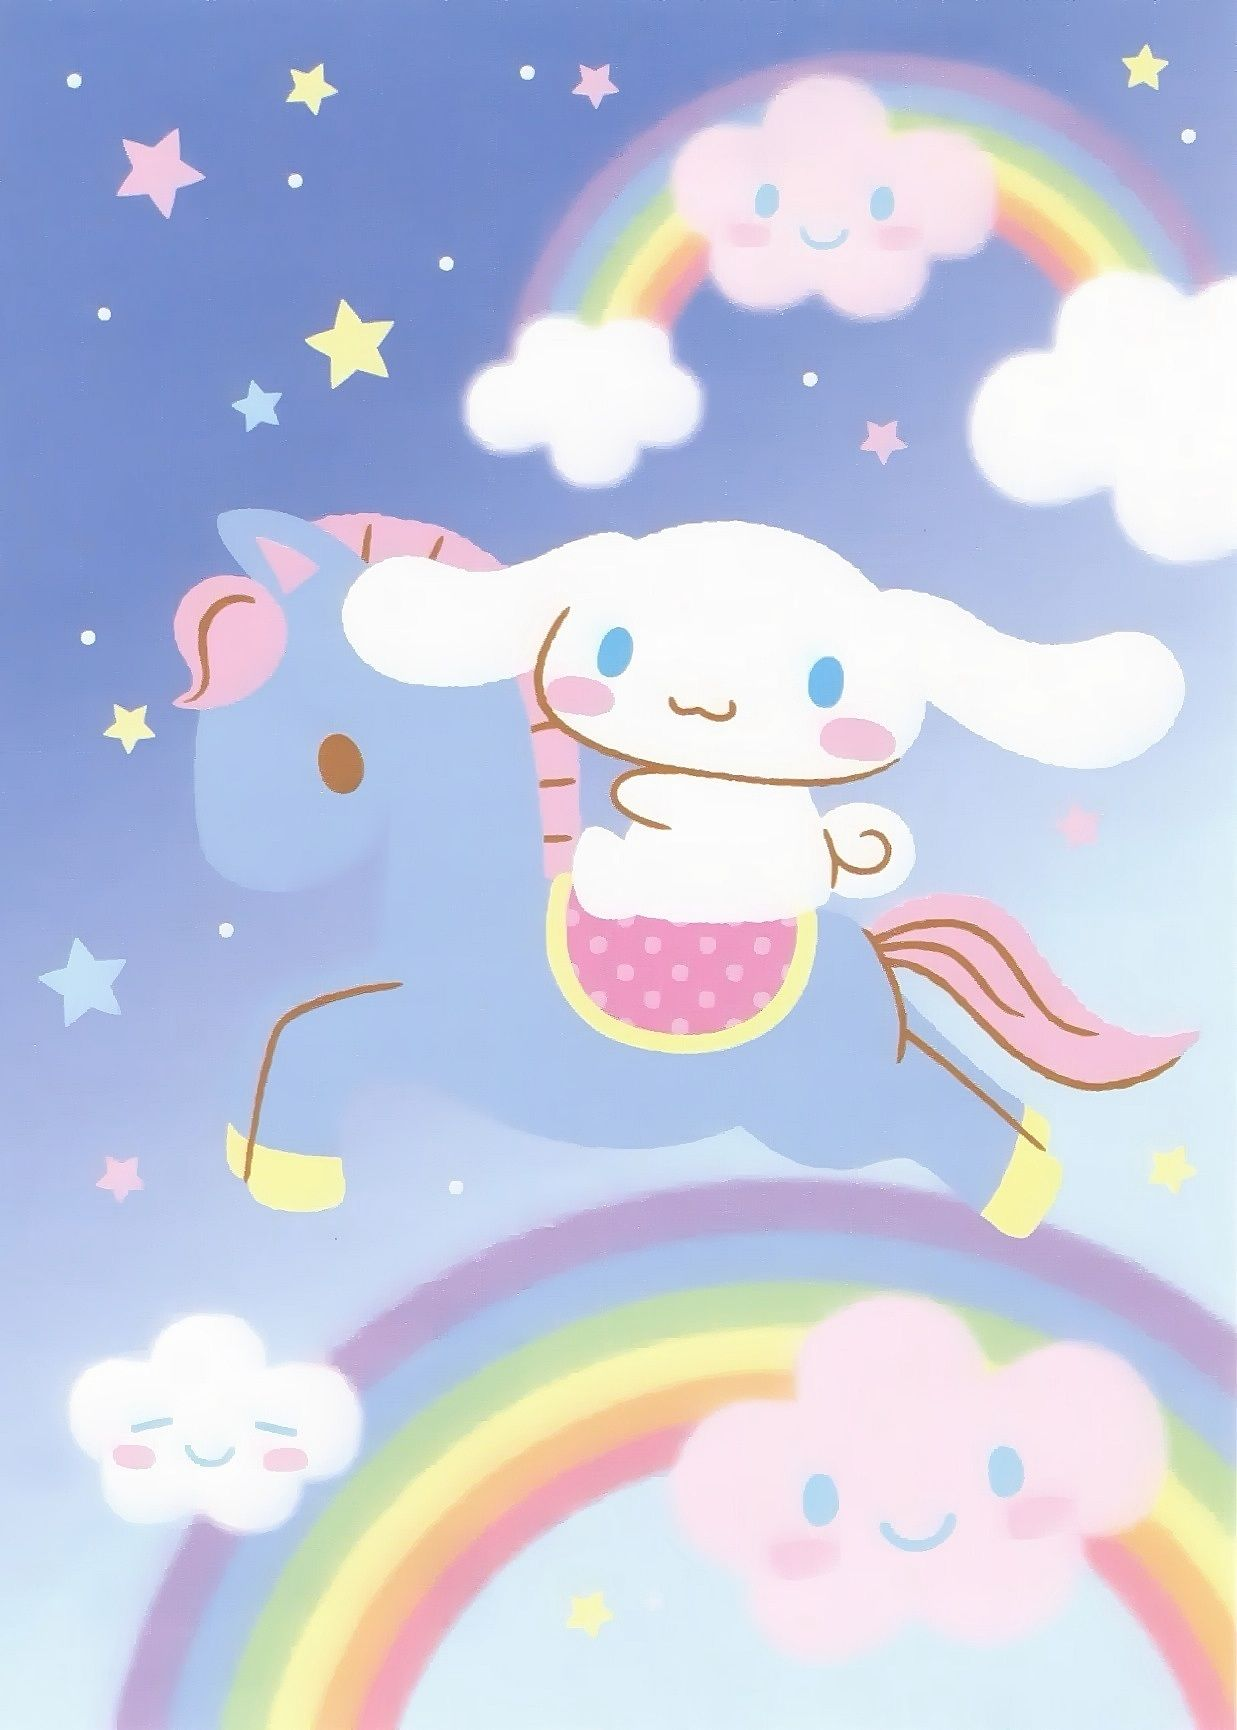 Download Wallpaper Hello Kitty Sky Blue - a8f095b0d3199975d7f7756cc410cfc4  Pictures_993191.jpg